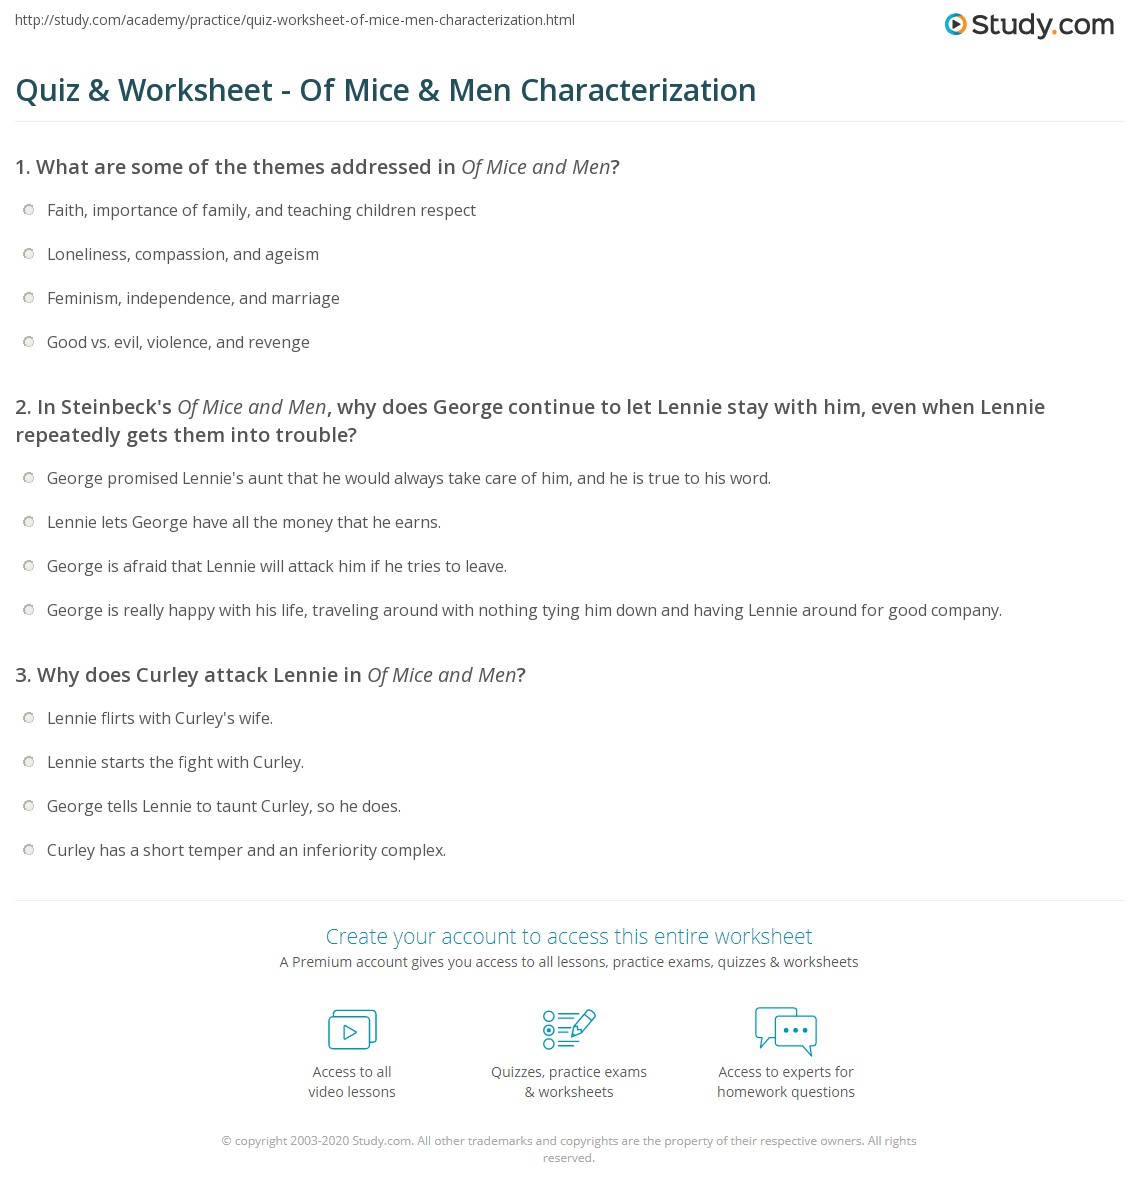 Worksheet Of Mice And Men Worksheets quiz worksheet of mice men characterization study com print in worksheet